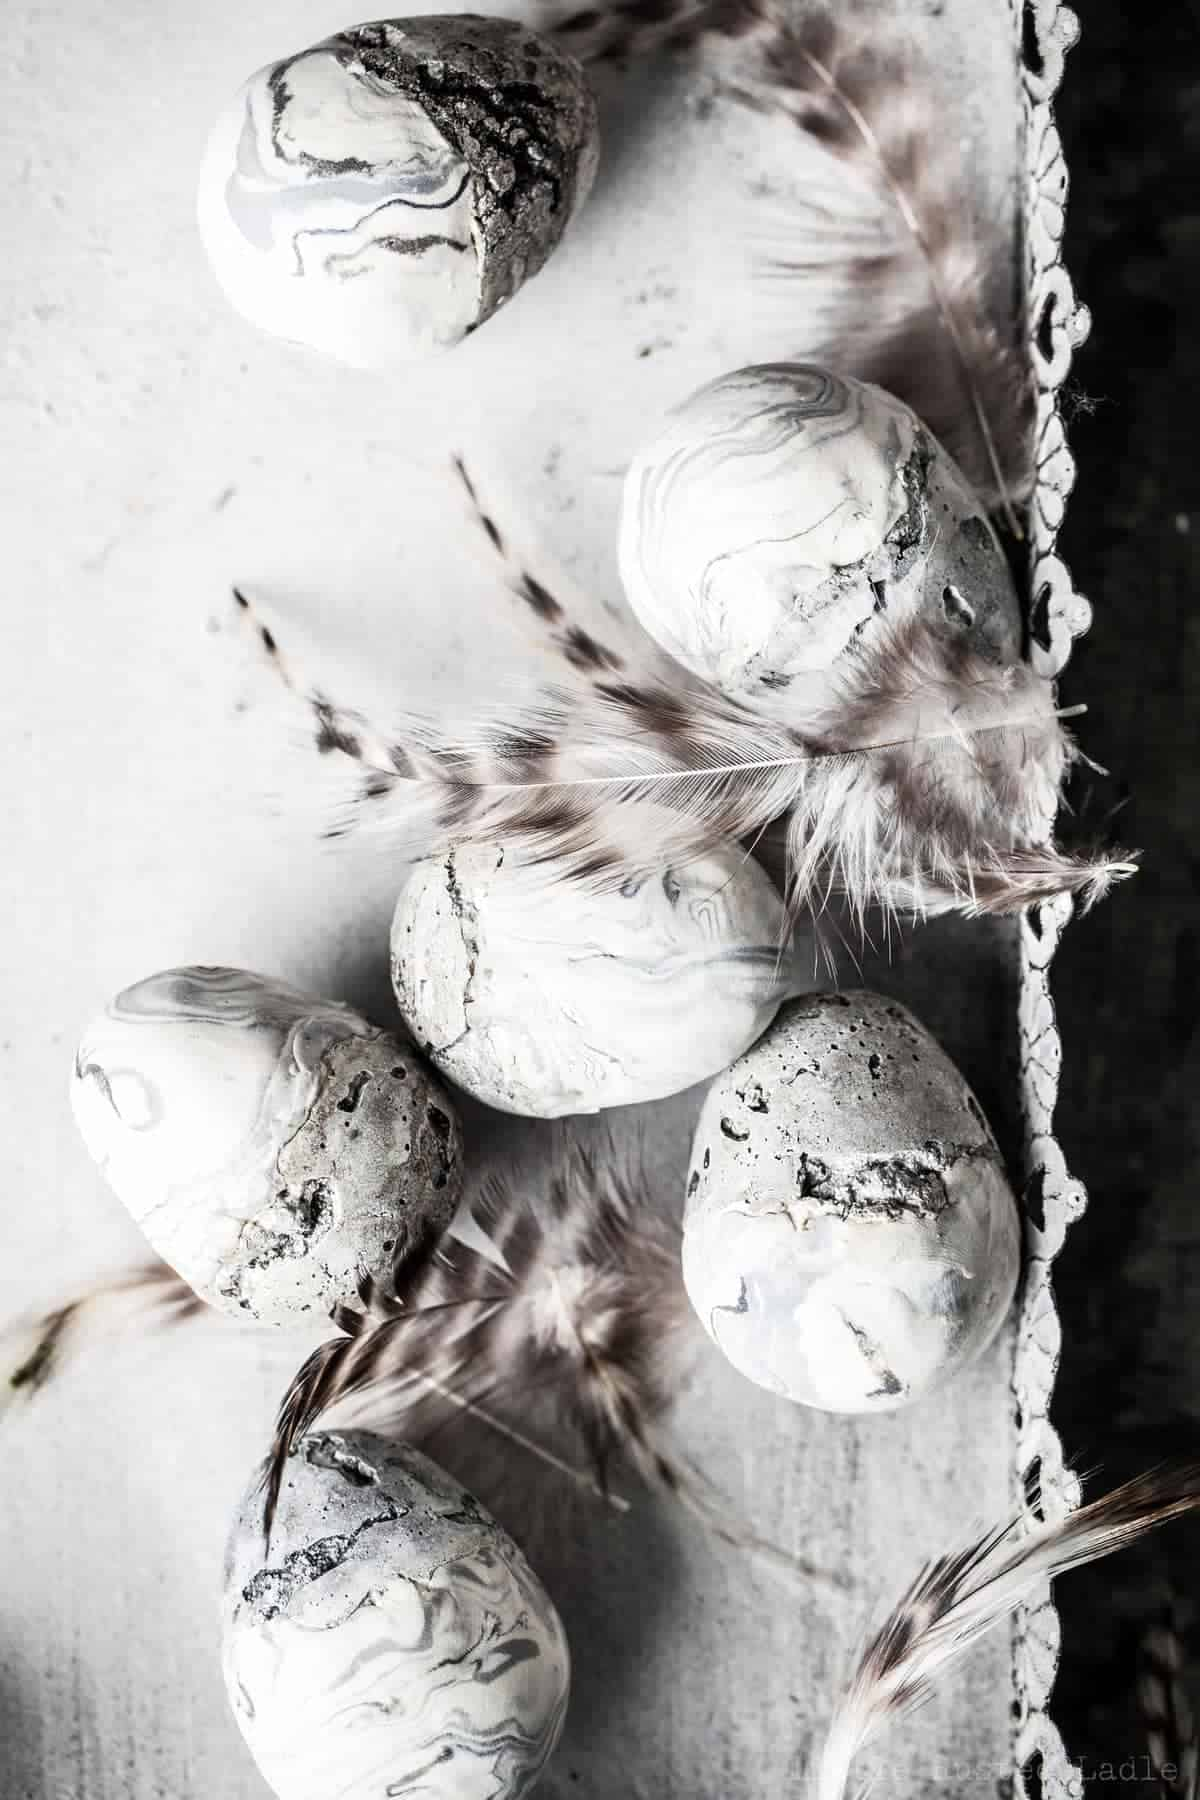 DIY Marble and Concrete Easter Egg Craft - Little Rusted Ladle - Jena Carlin Photography 2 -011 - 96 WM